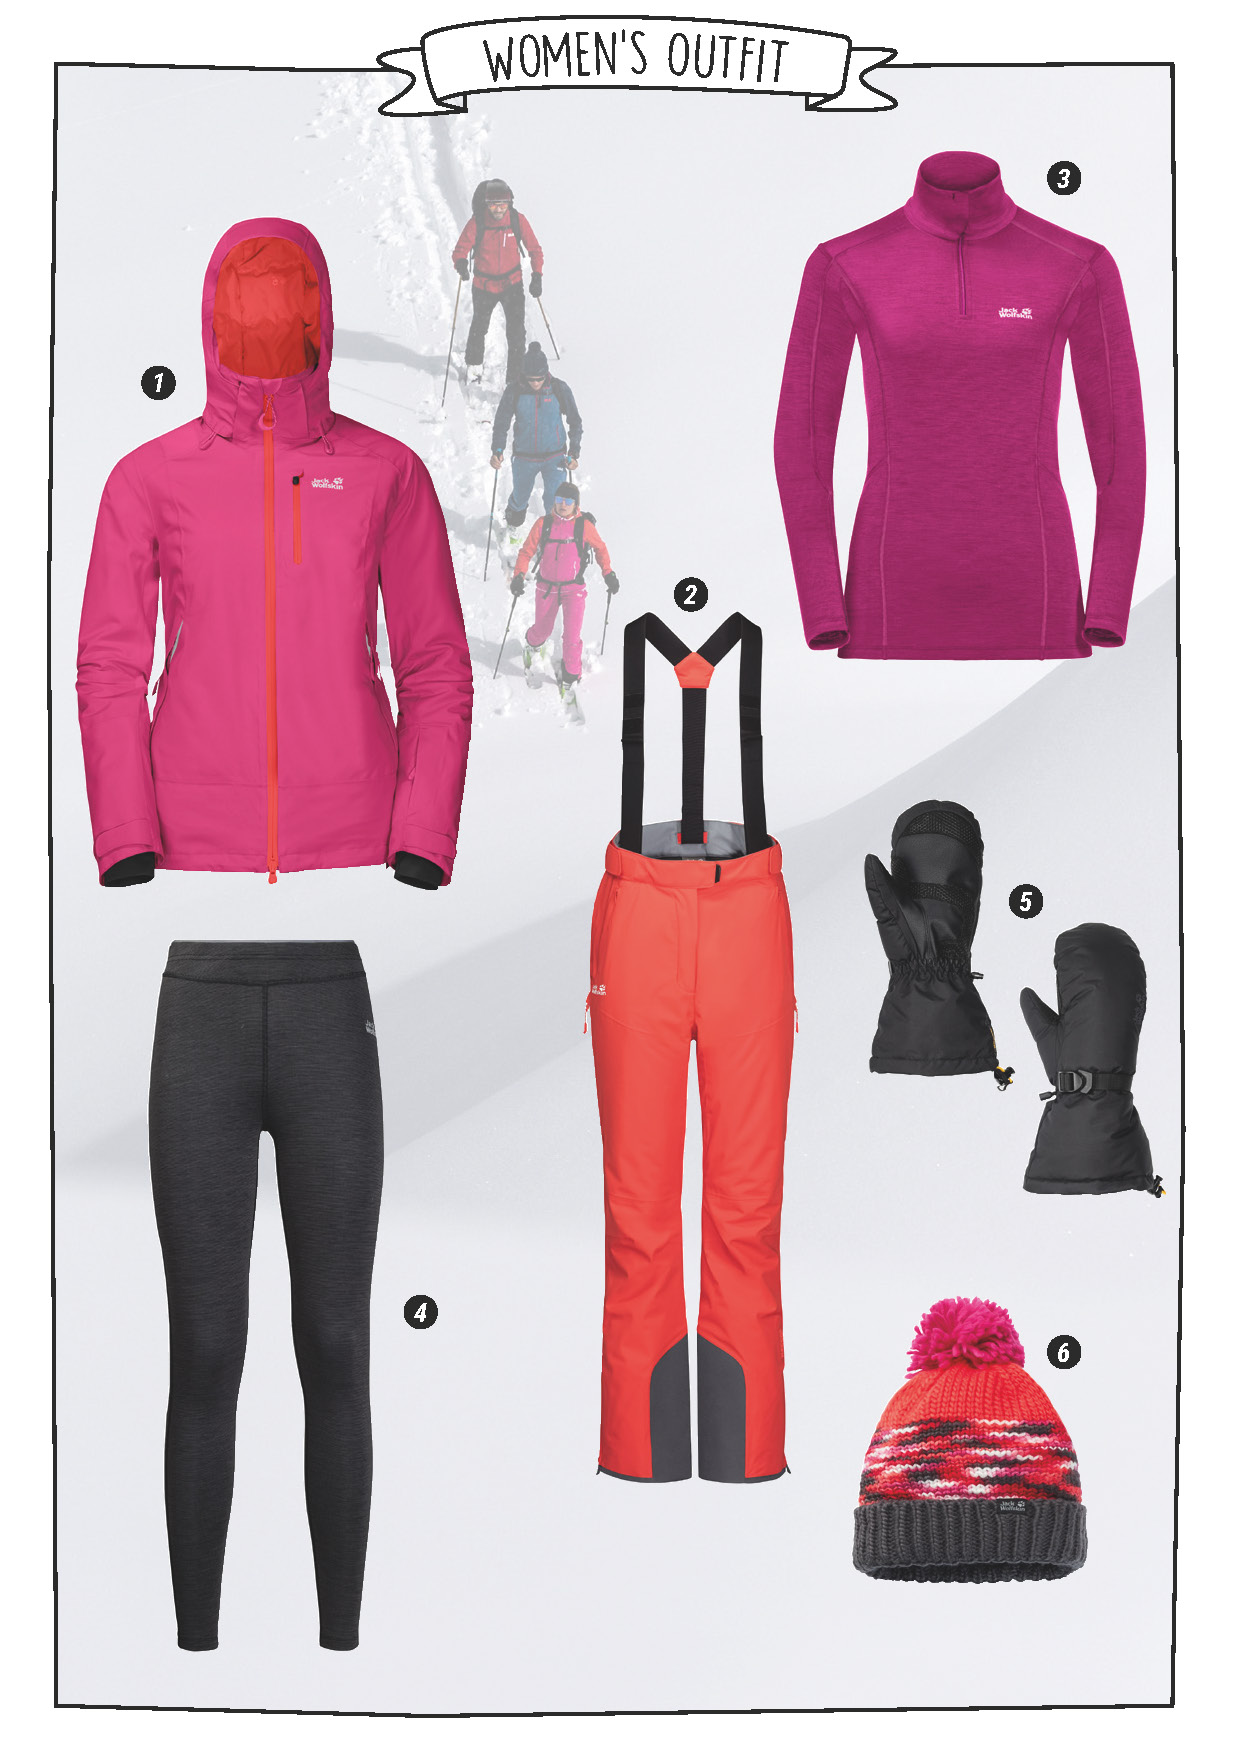 Women's Outfit